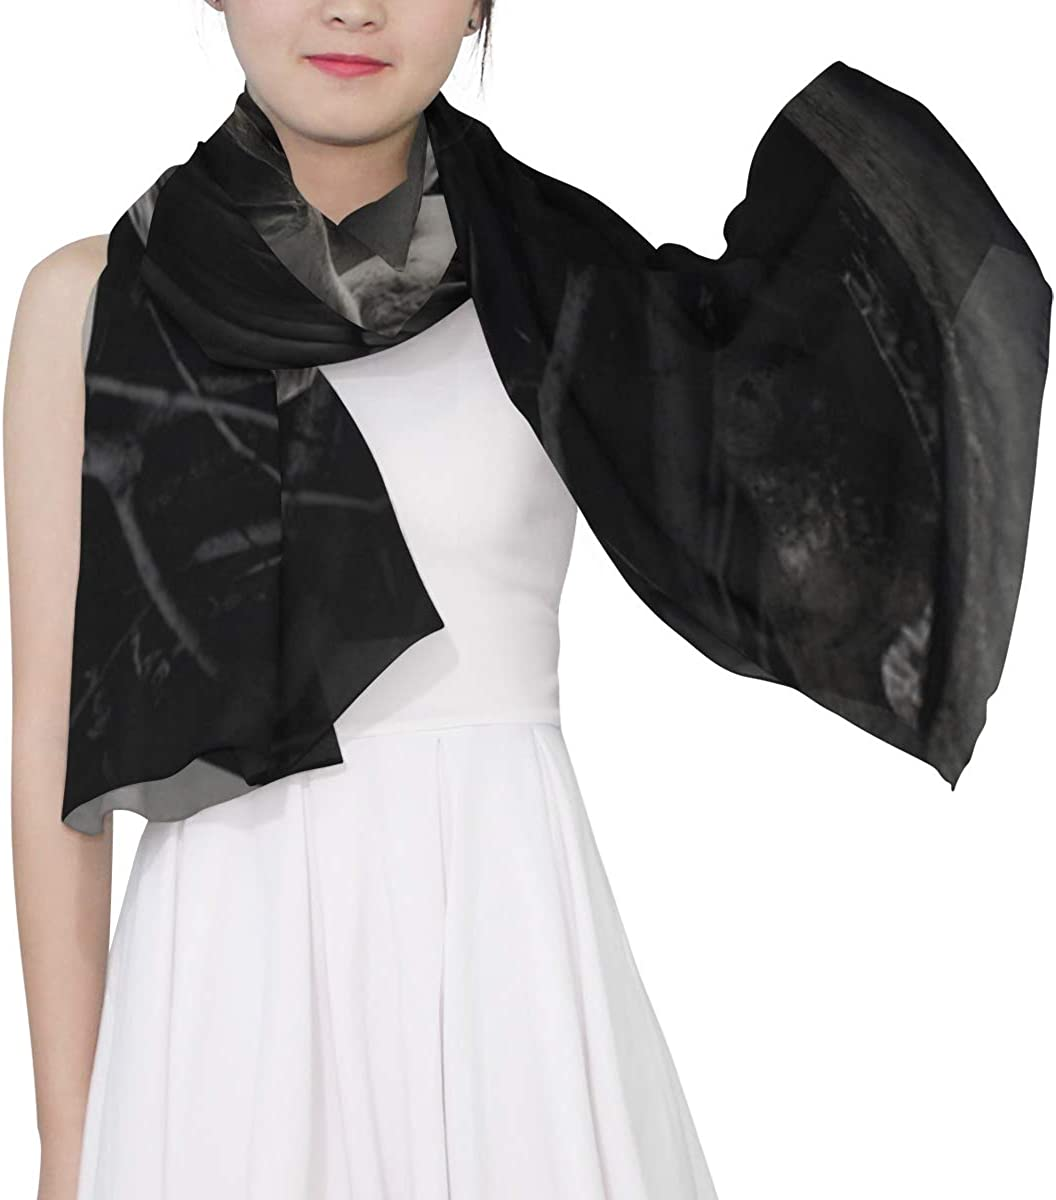 Black And Terrible Crow Unique Fashion Scarf For Women Lightweight Fashion Fall Winter Print Scarves Shawl Wraps Gifts For Early Spring